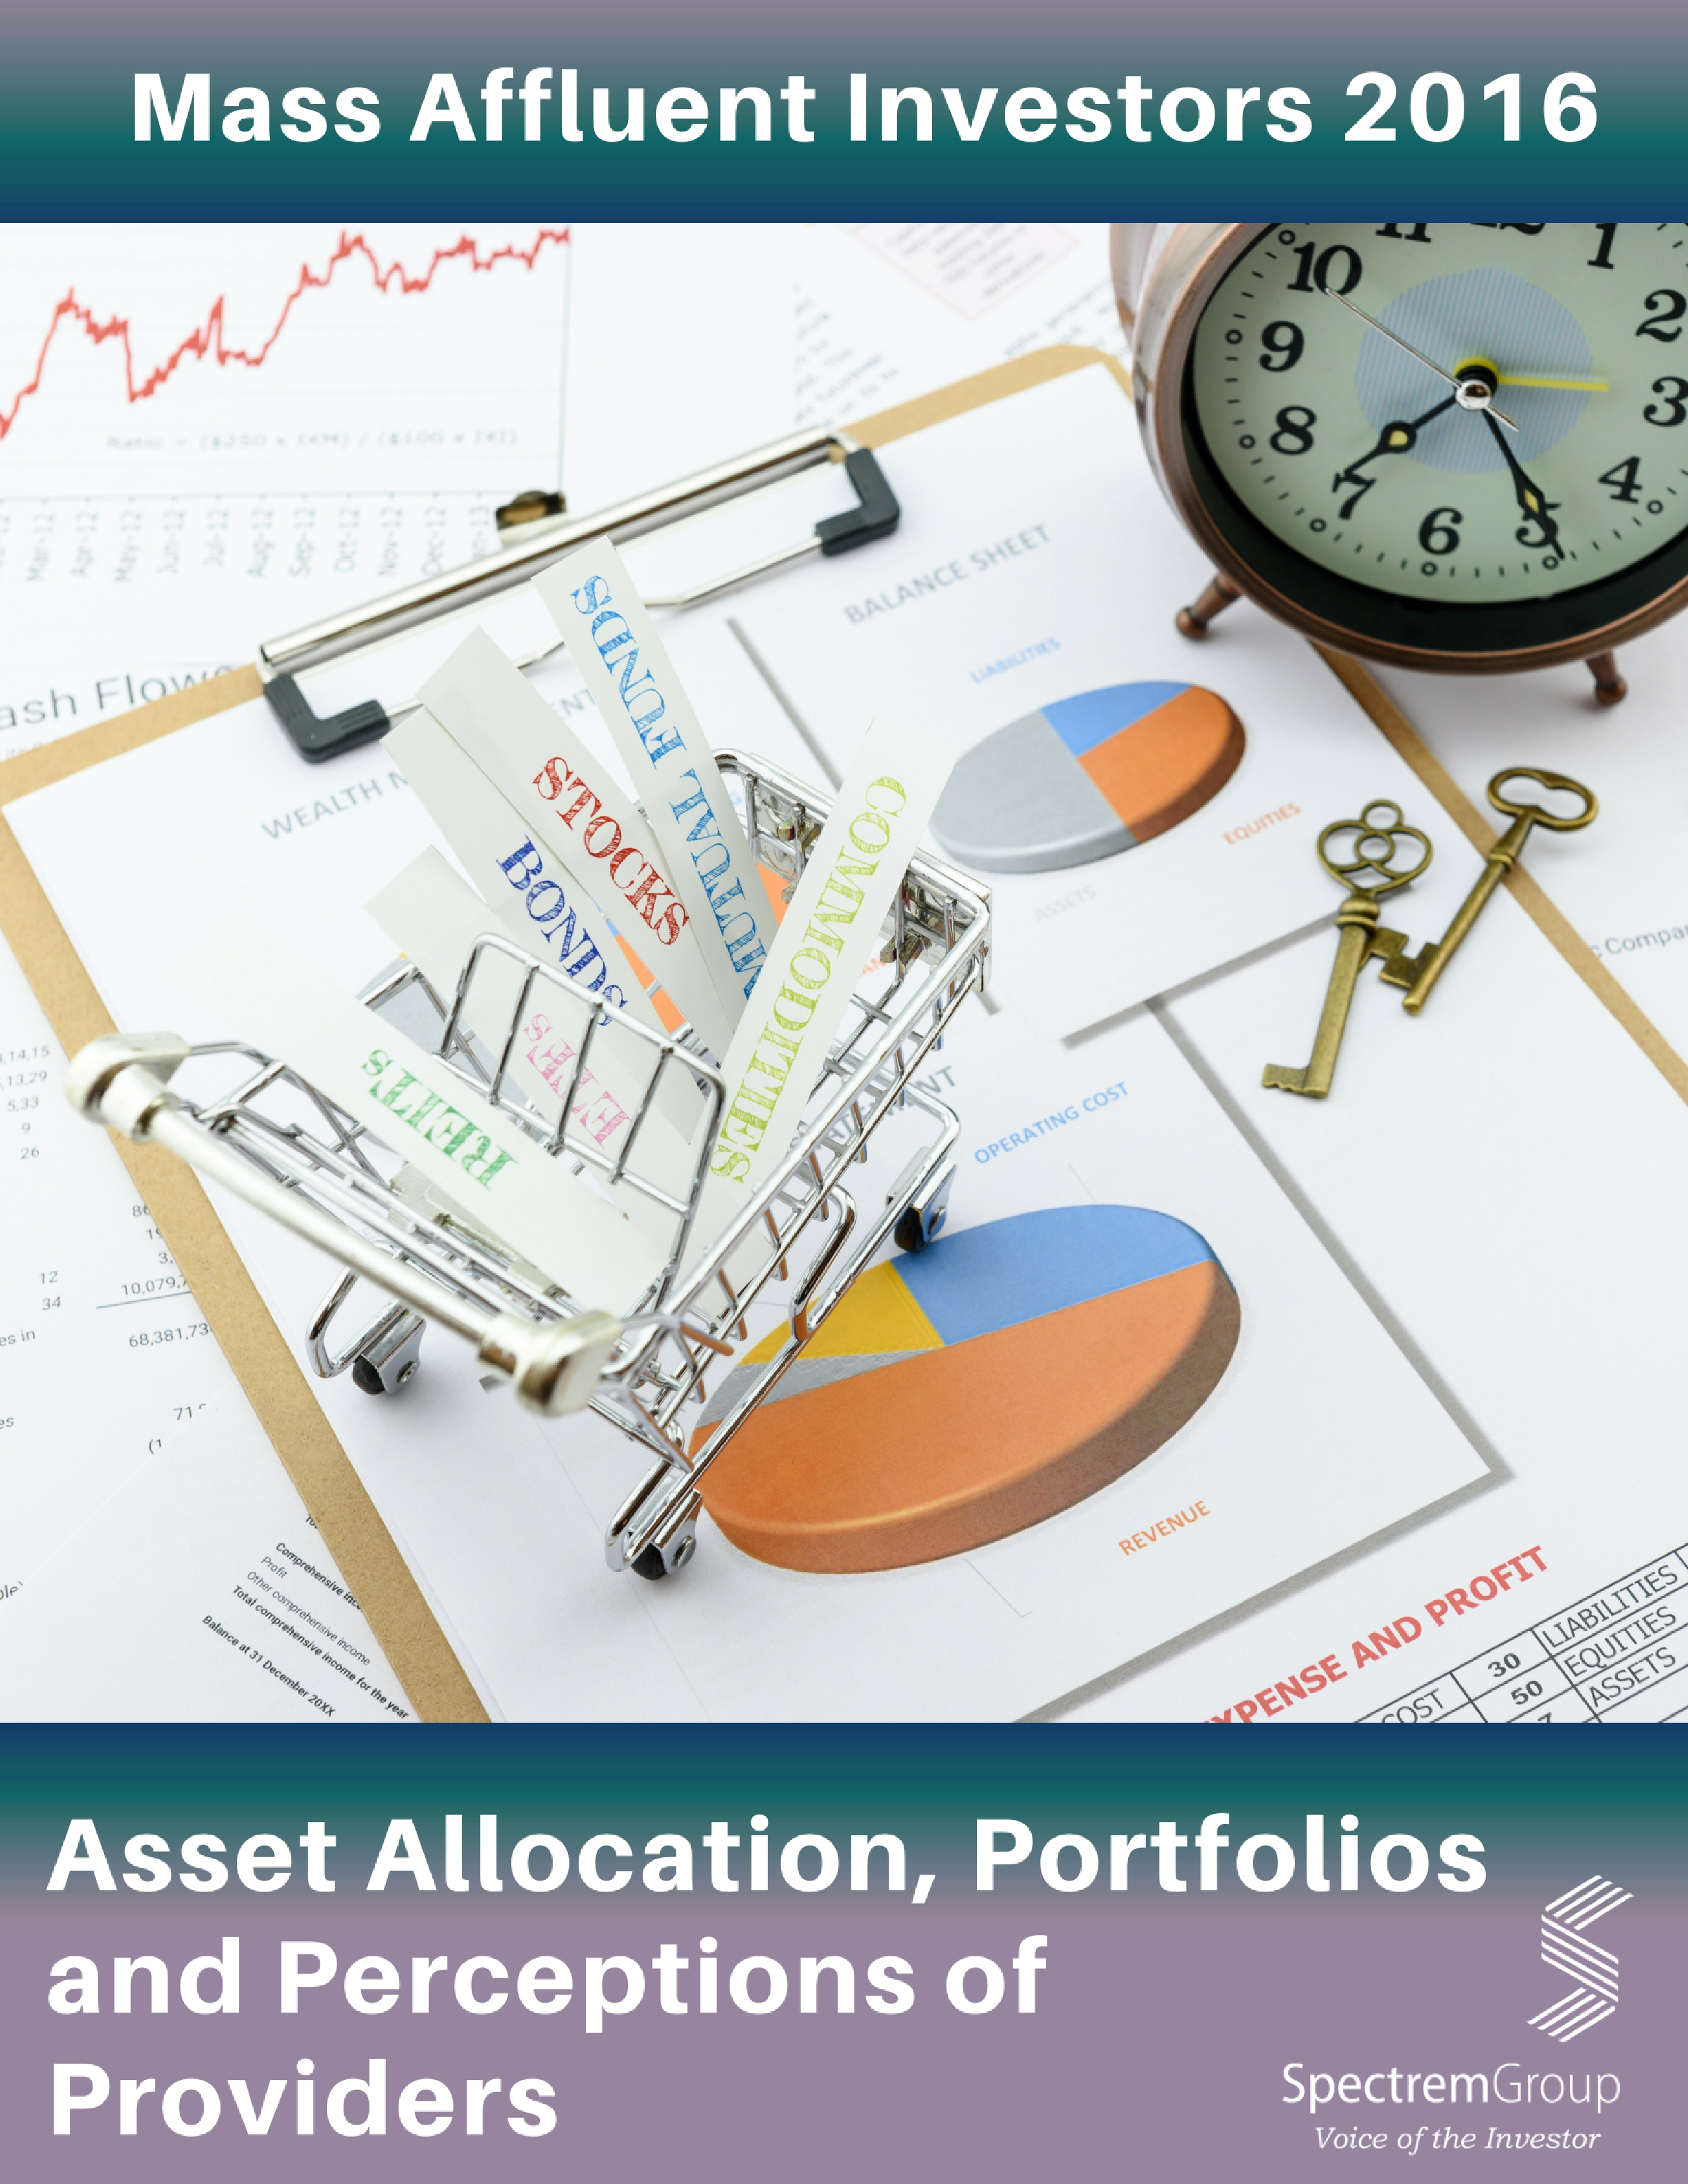 Asset Allocation, Portfolios and Primary Providers - 2016 Mass Affluent